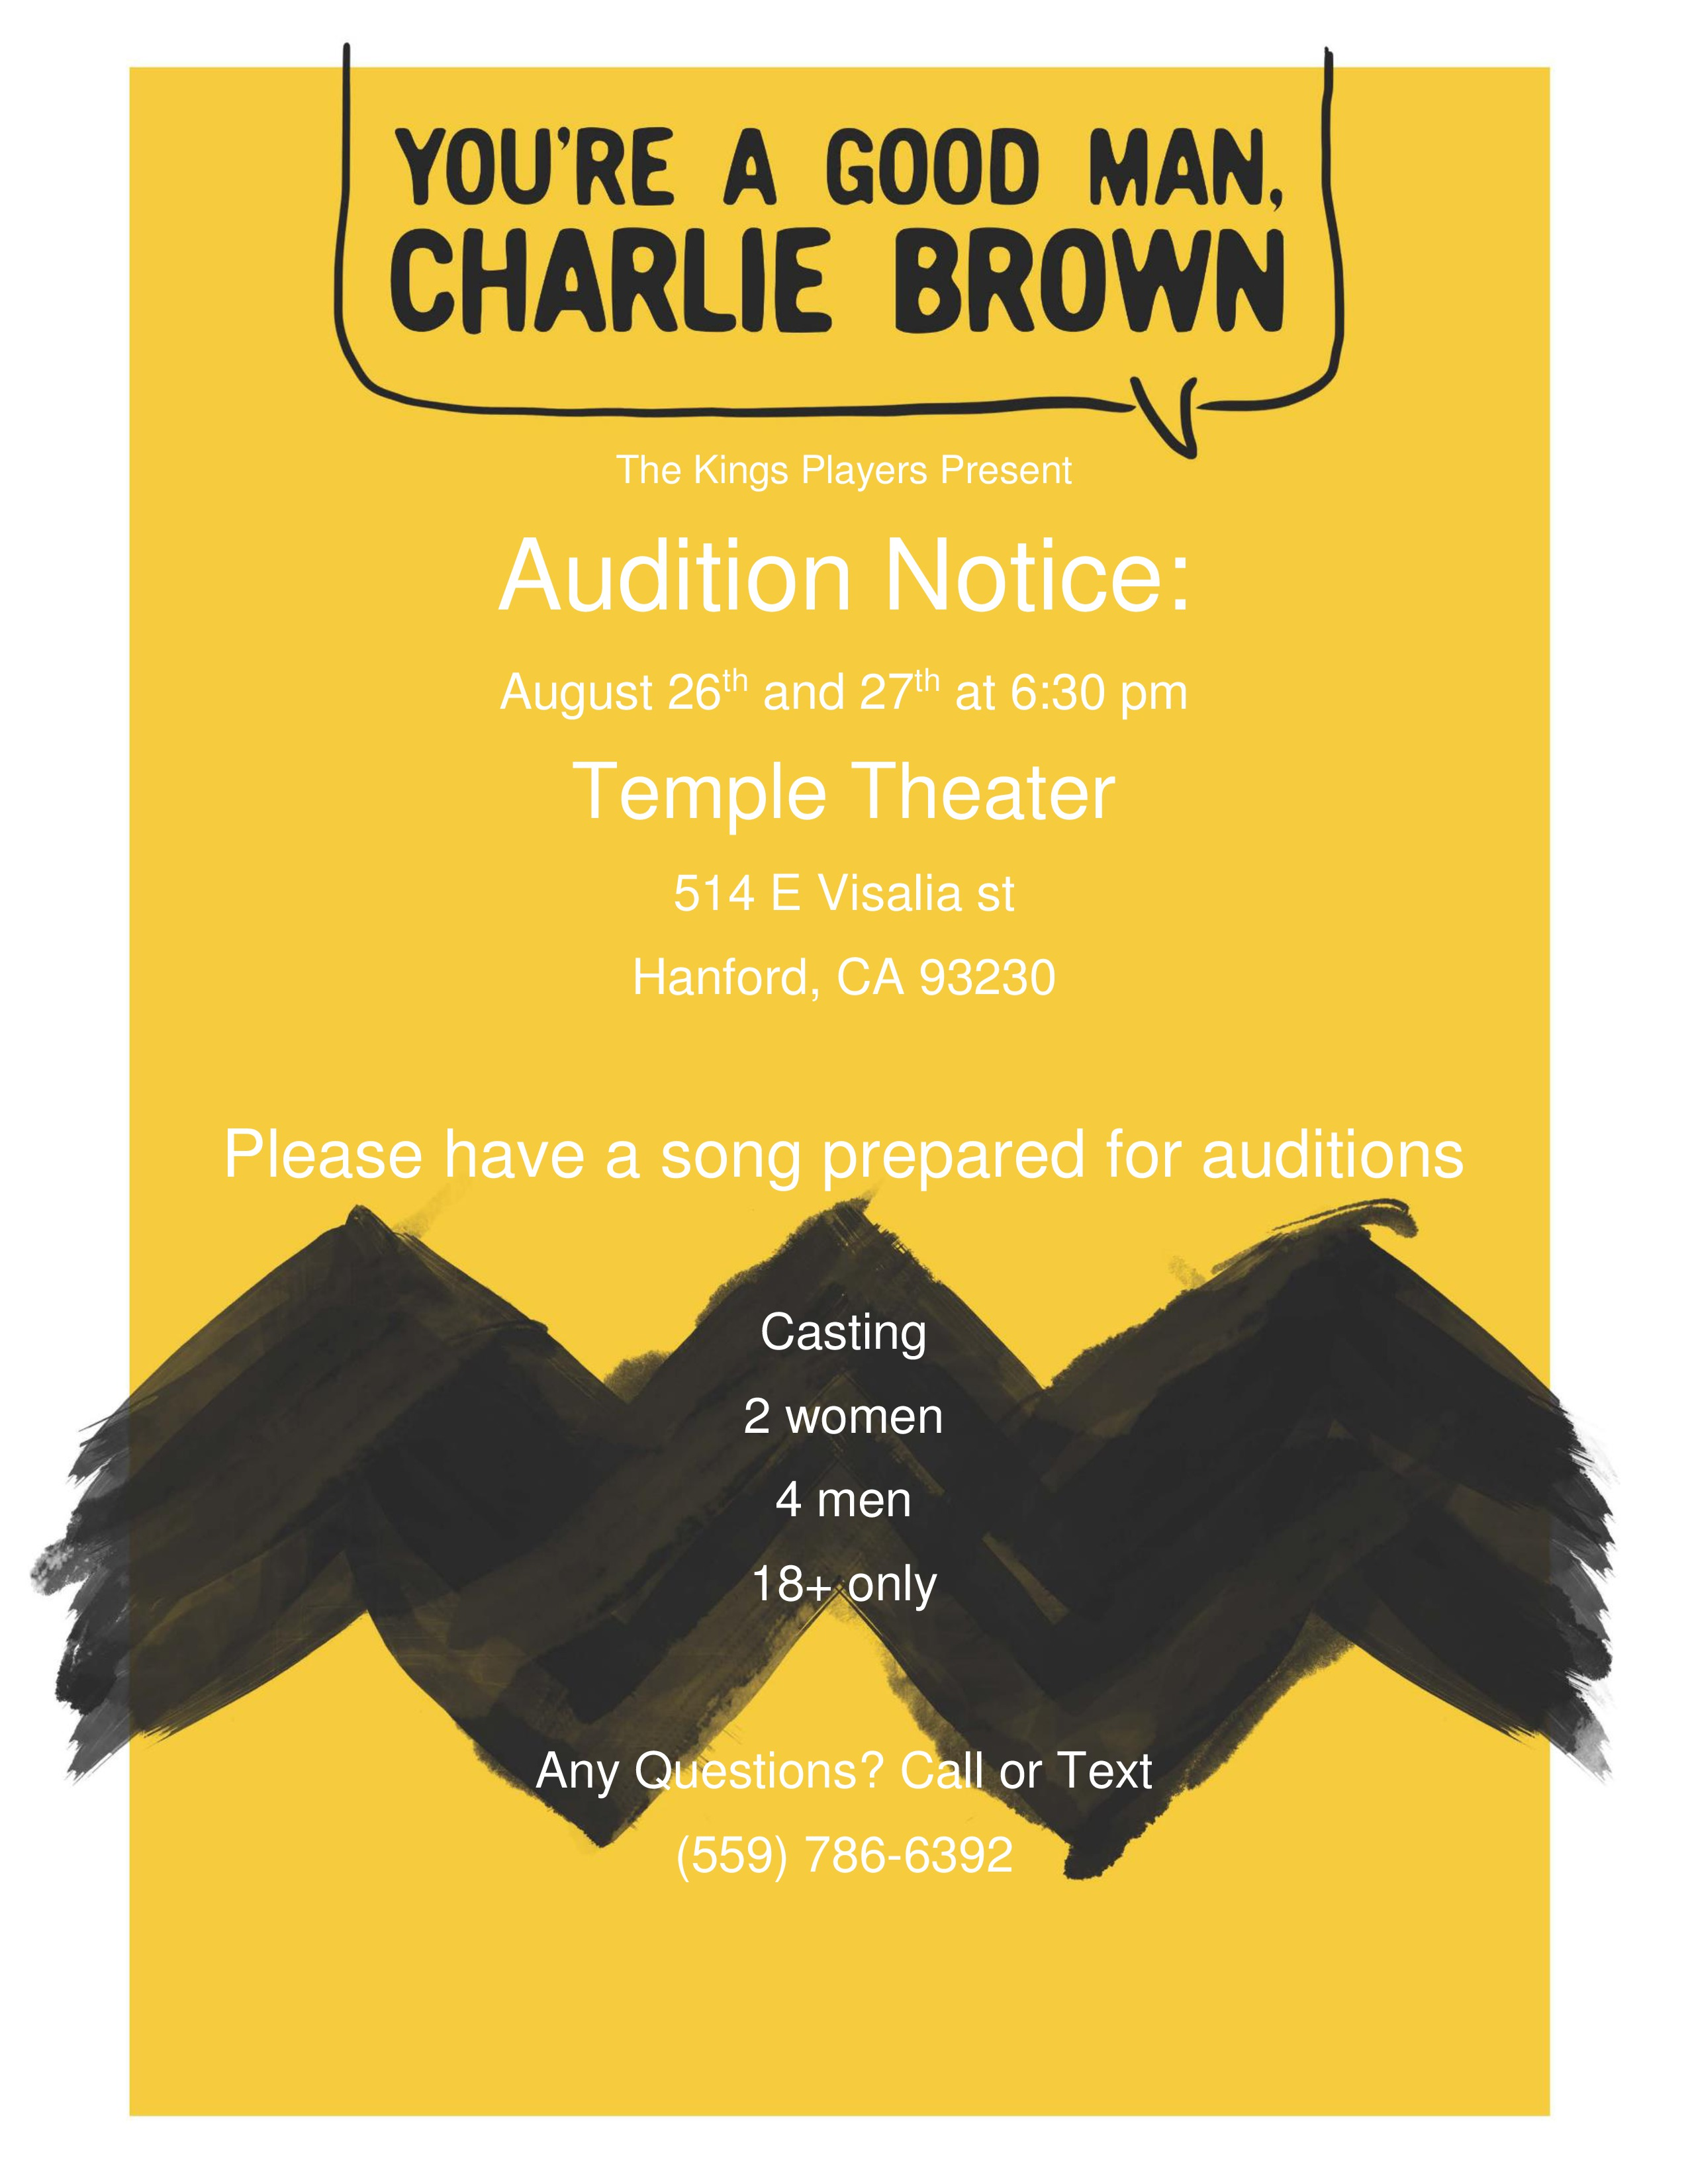 Charlie Brown audition flyer-page-0